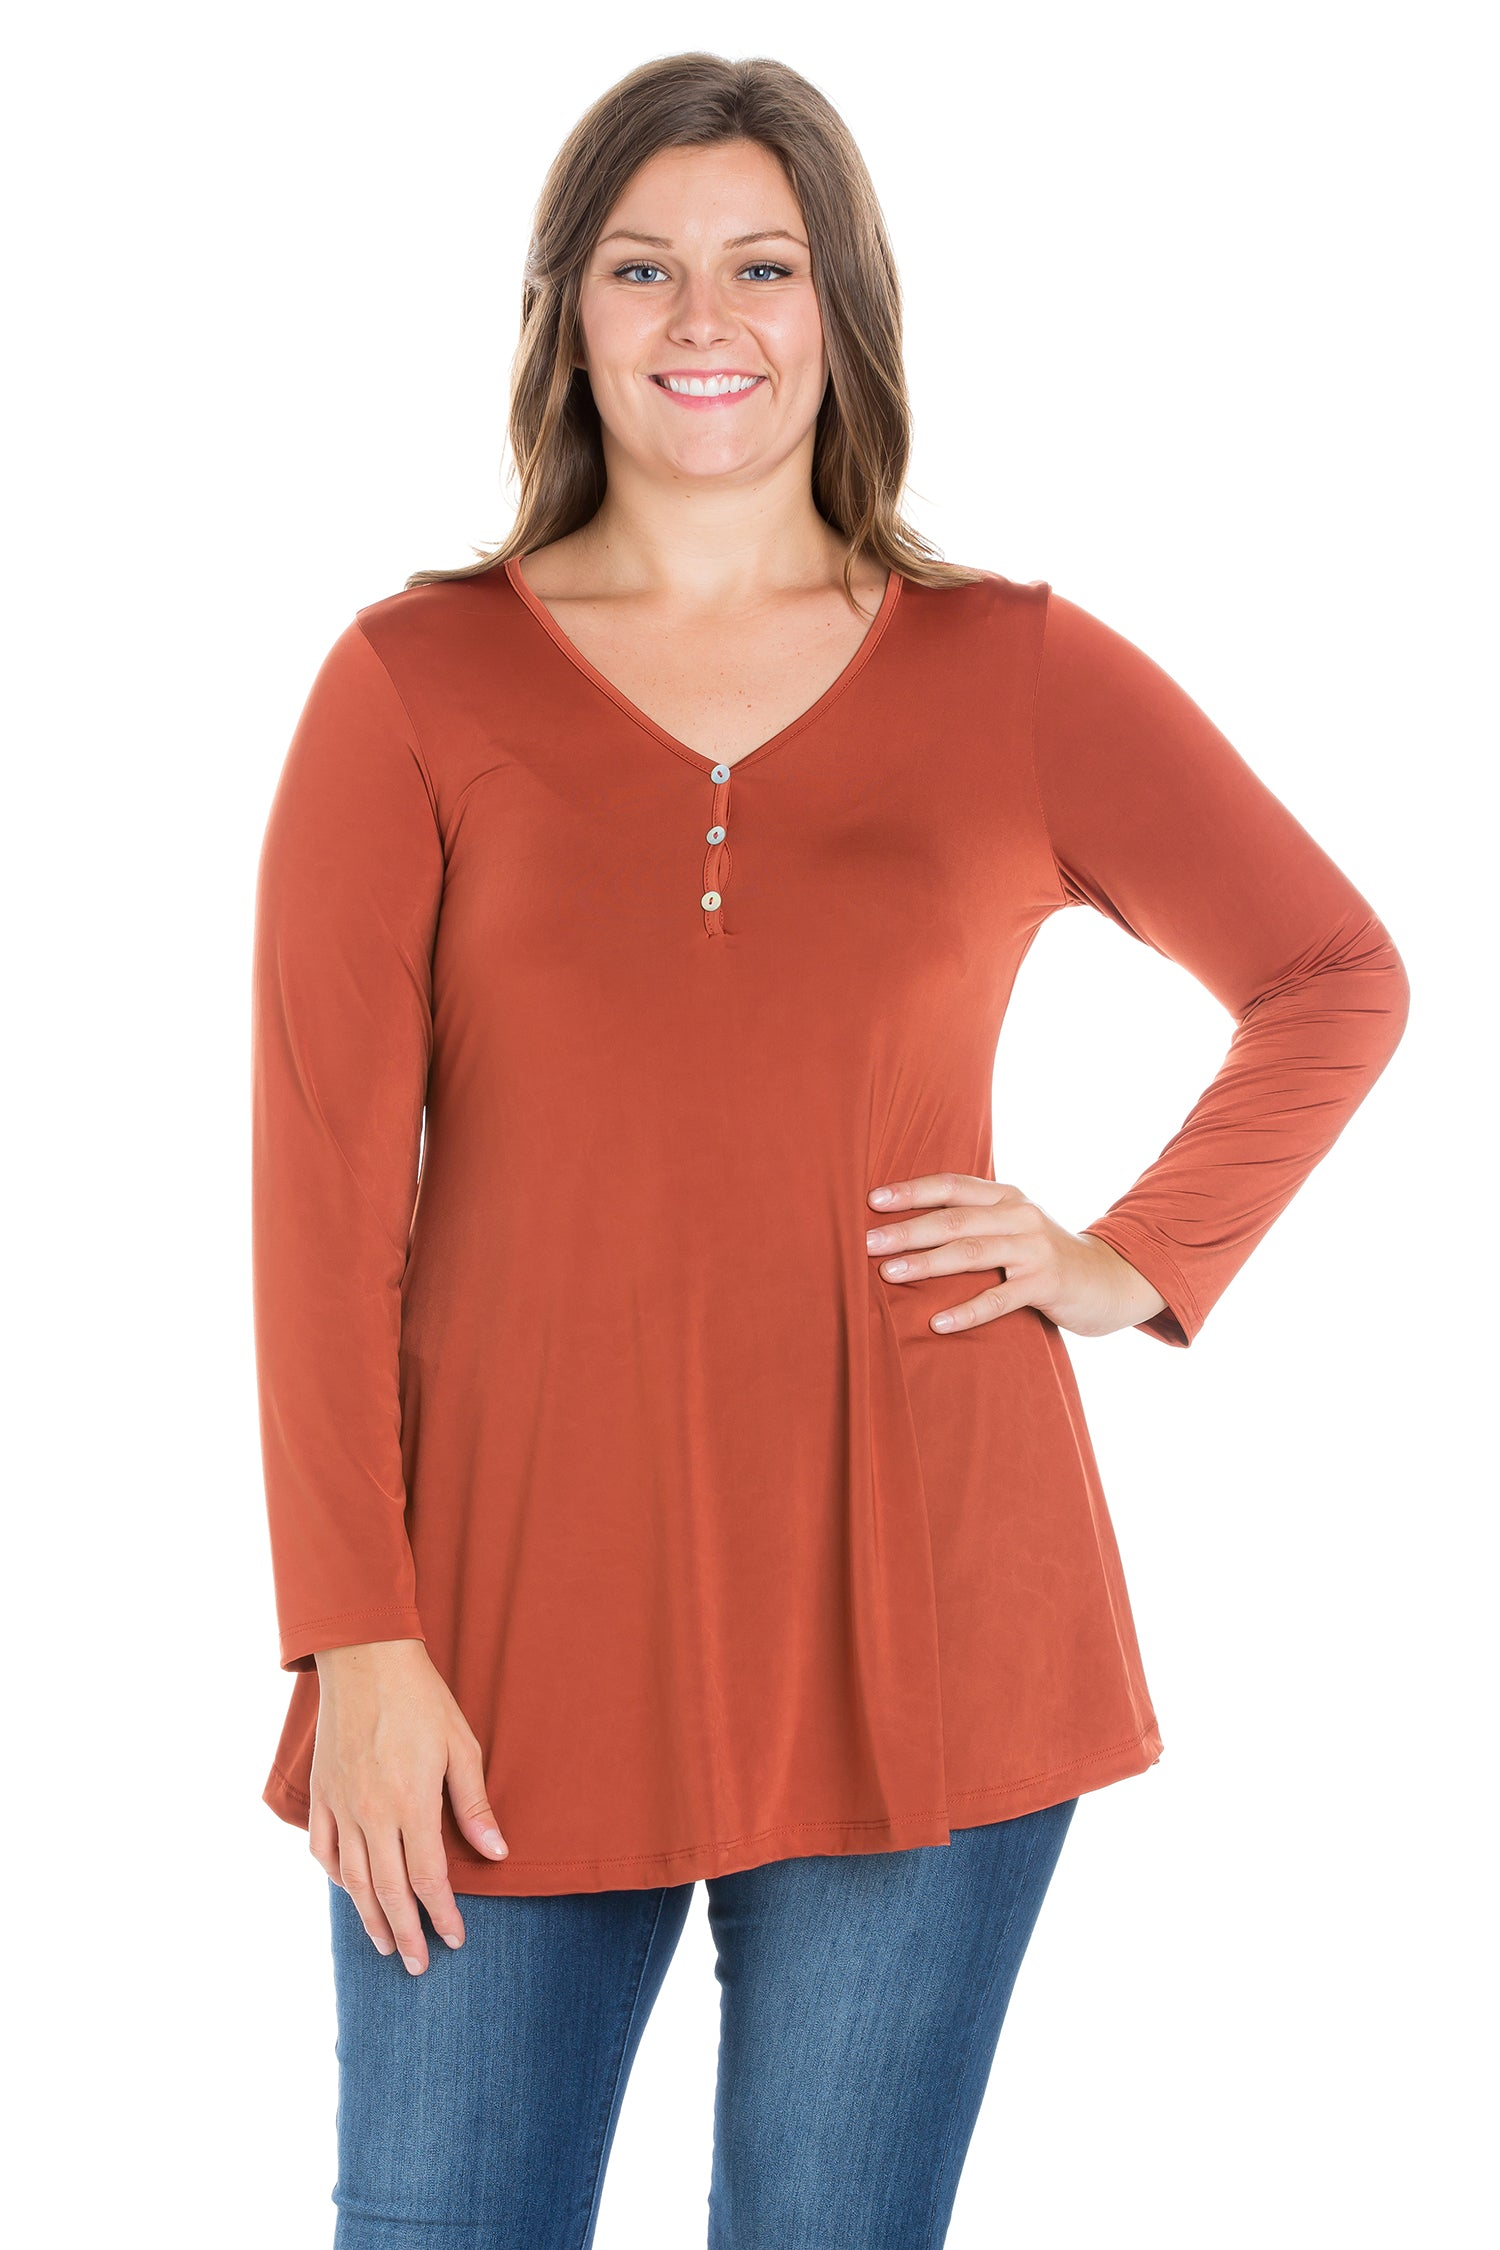 24seven Comfort Apparel Flared Long Sleeve Plus Size Henley Tunic Top-TOPS-24Seven Comfort Apparel-RUST-1X-24/7 Comfort Apparel